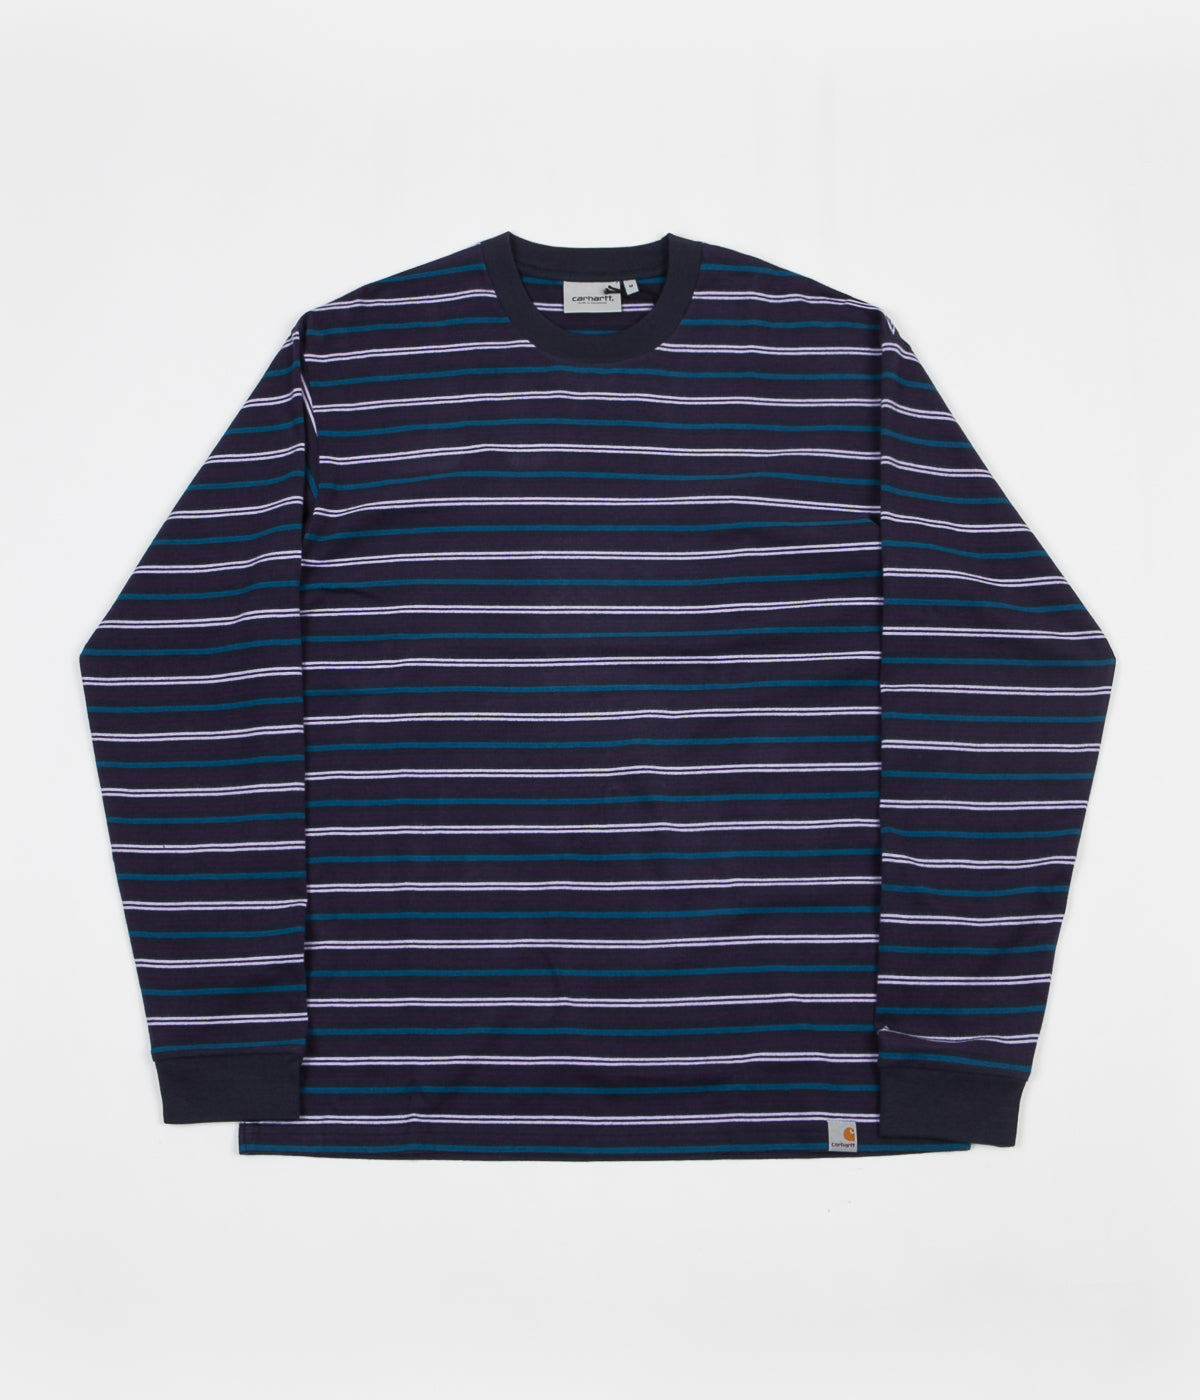 a7335f5afab4 Carhartt Korte Long Sleeve T-Shirt - Dark Navy Stripe | Flatspot